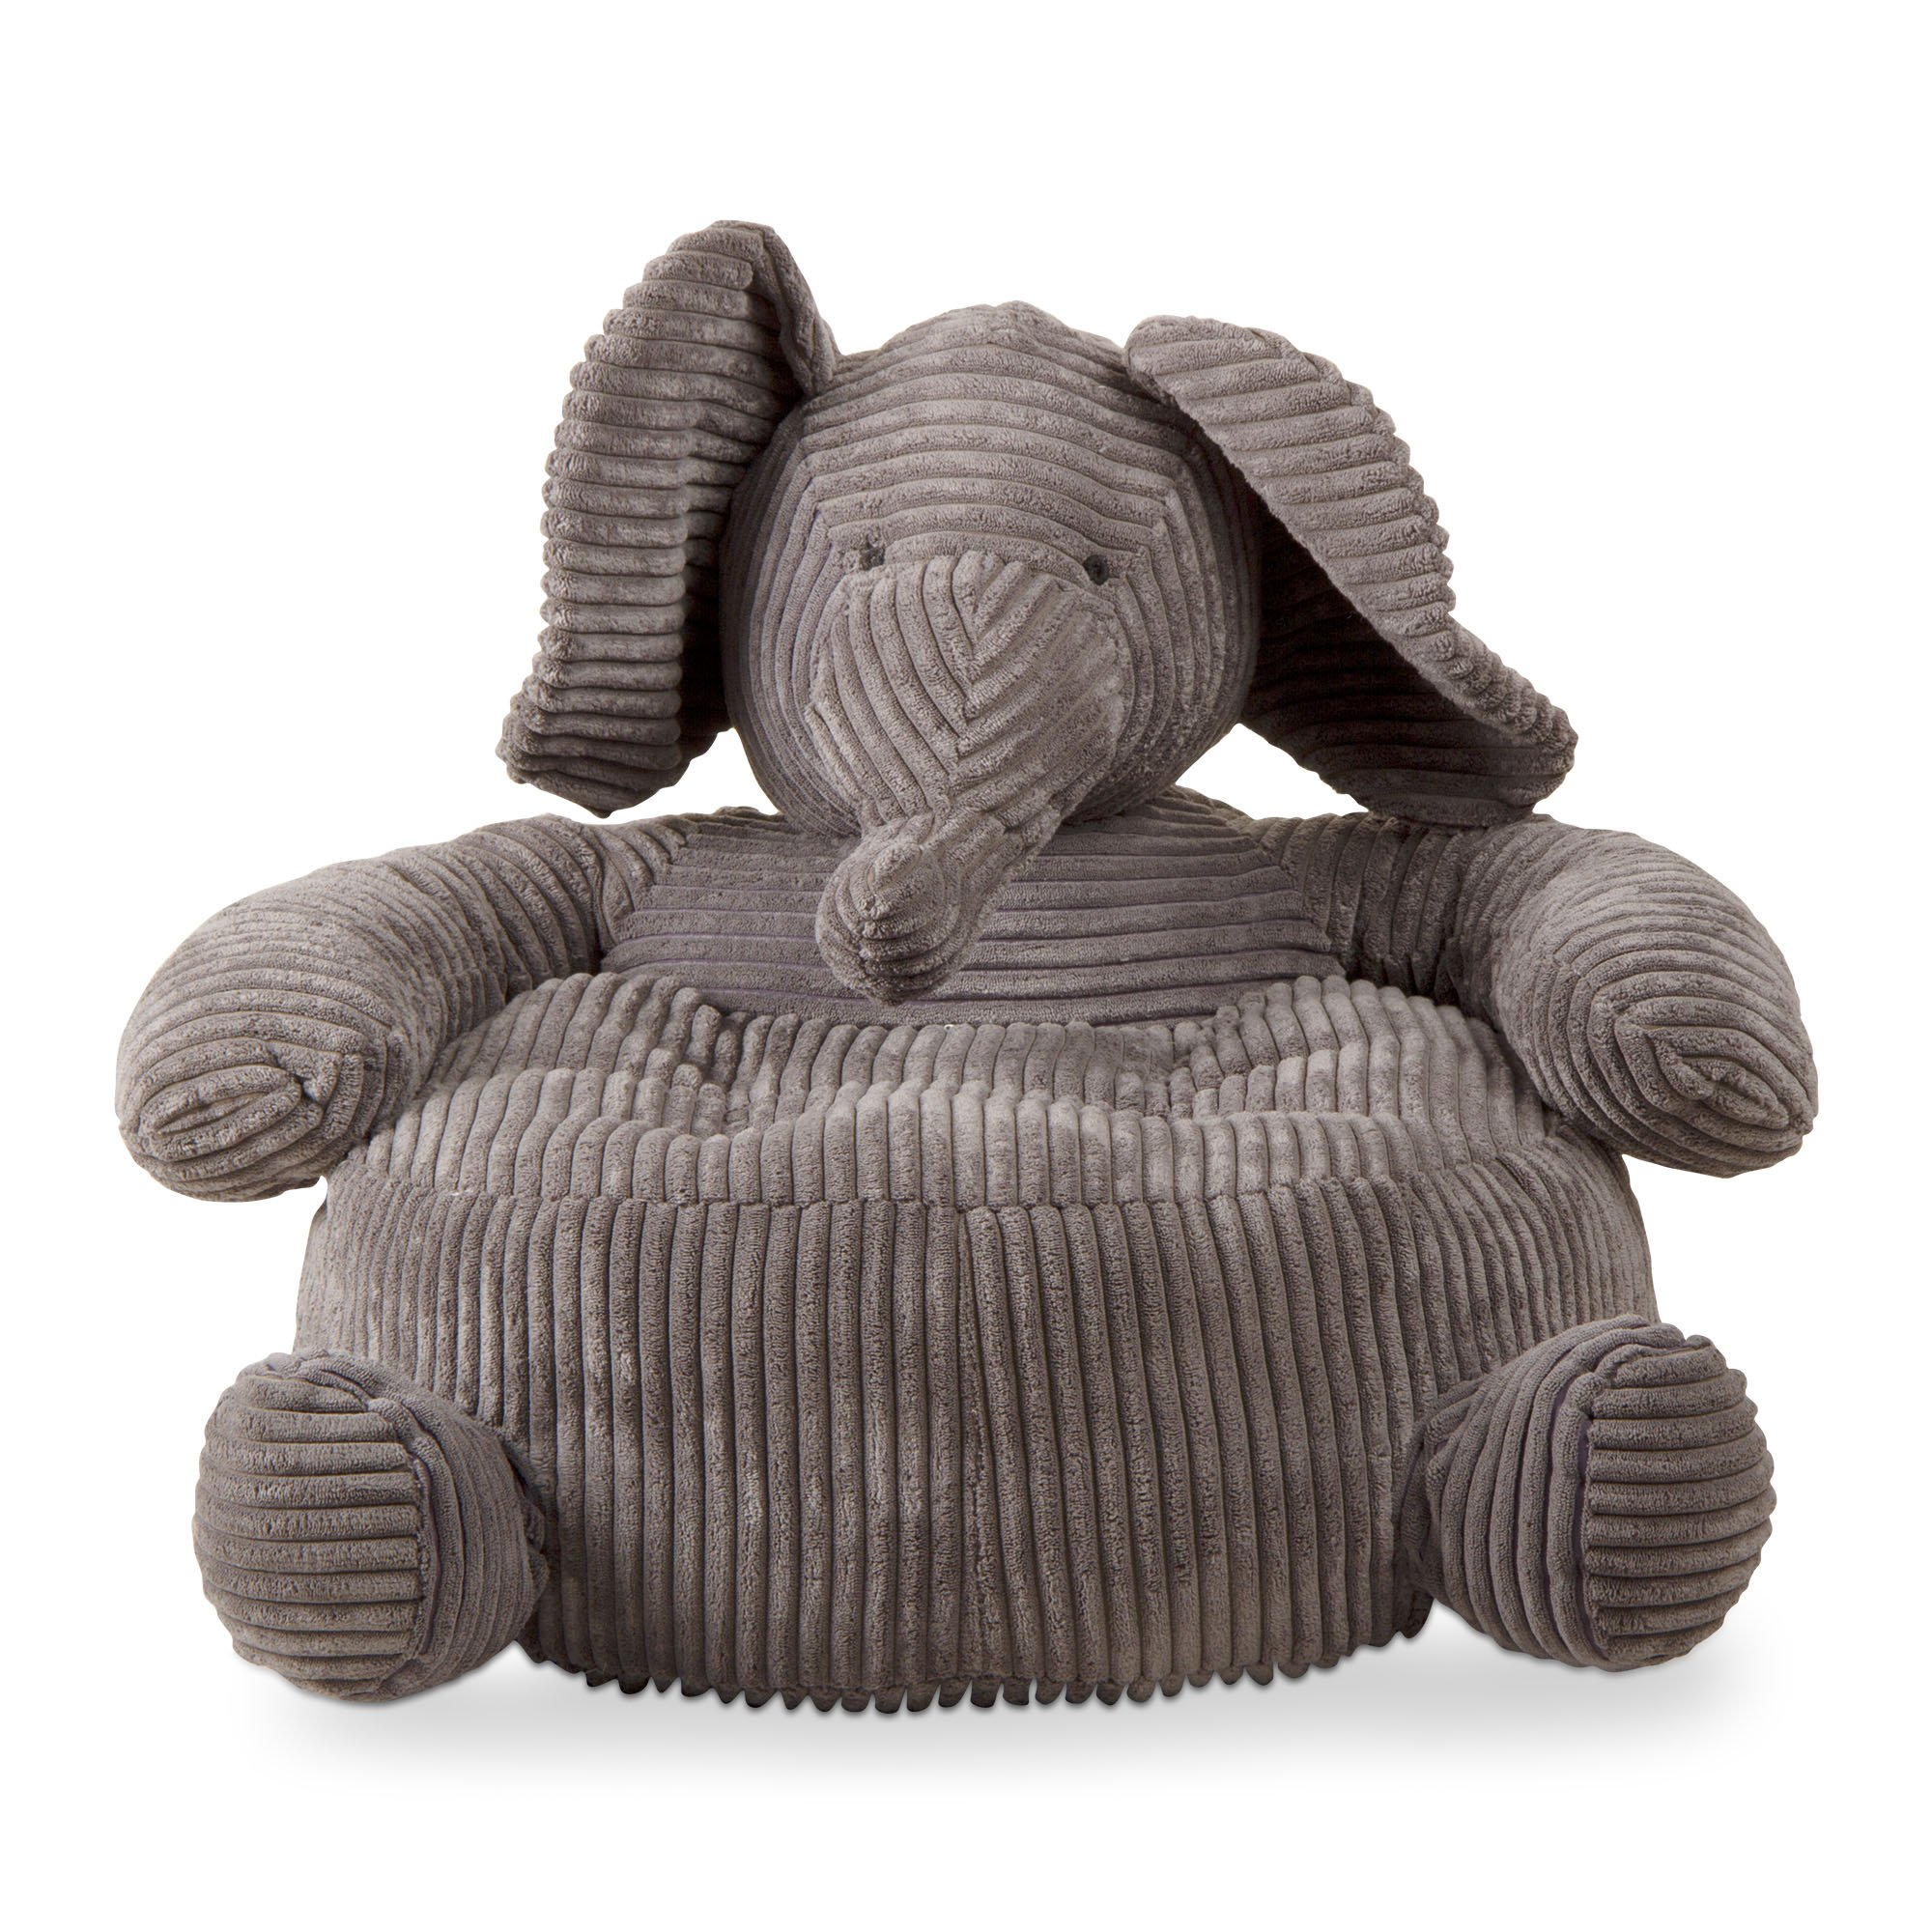 tag - Elephant Corduroy Plush Chair, Perfectly Designed for Your Child's Room or Nursery, Gray by tag